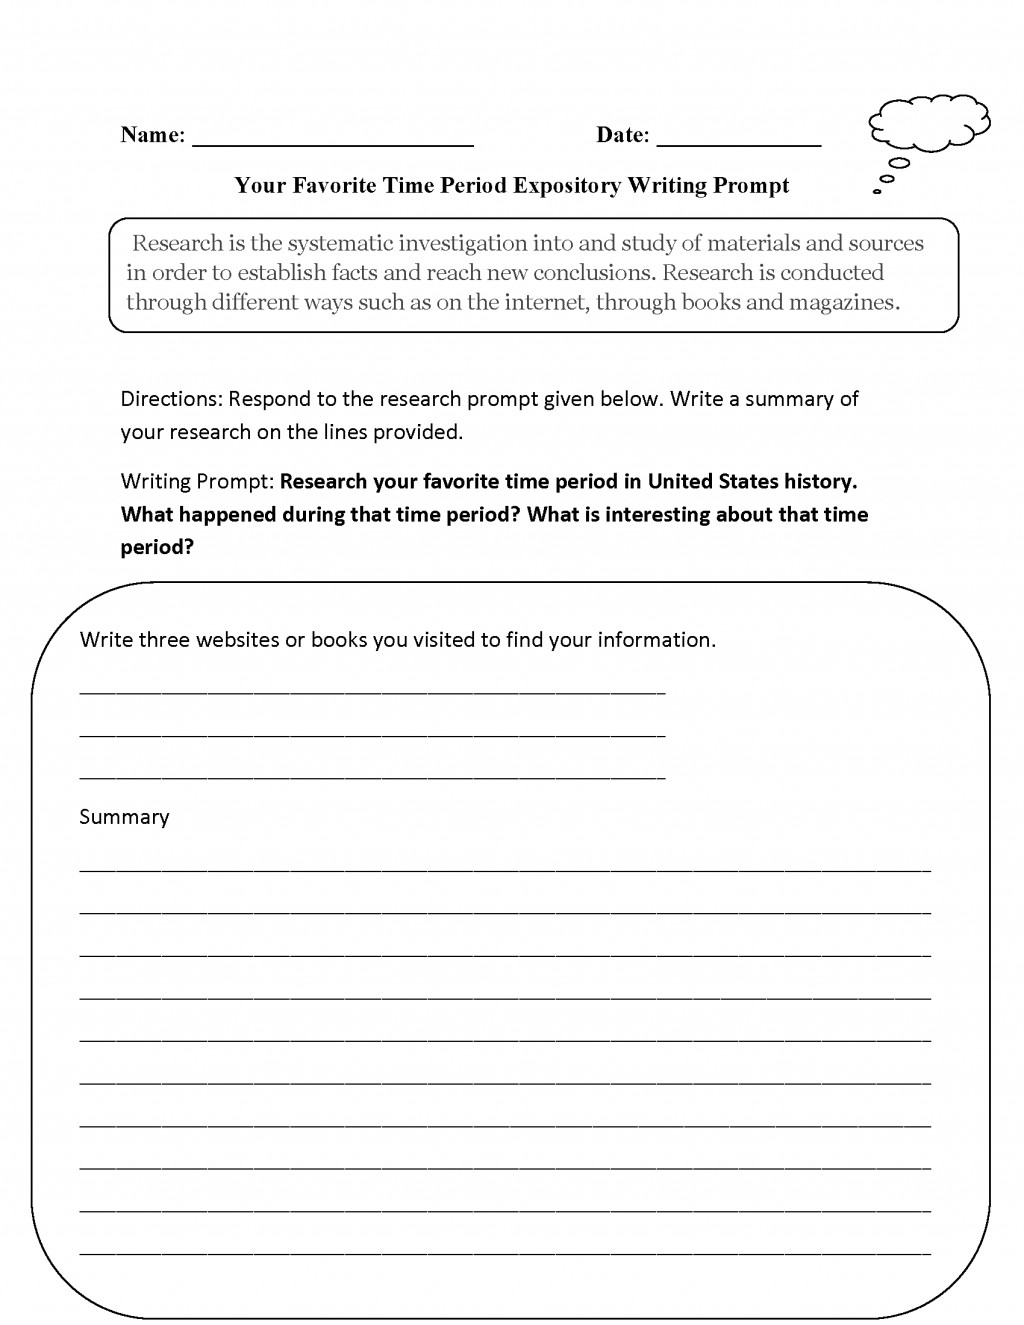 007 Favorite Time Period Expository Writing Prompt Prompts For Essays Essay Best College Persuasive Opinion 4th Grade Large